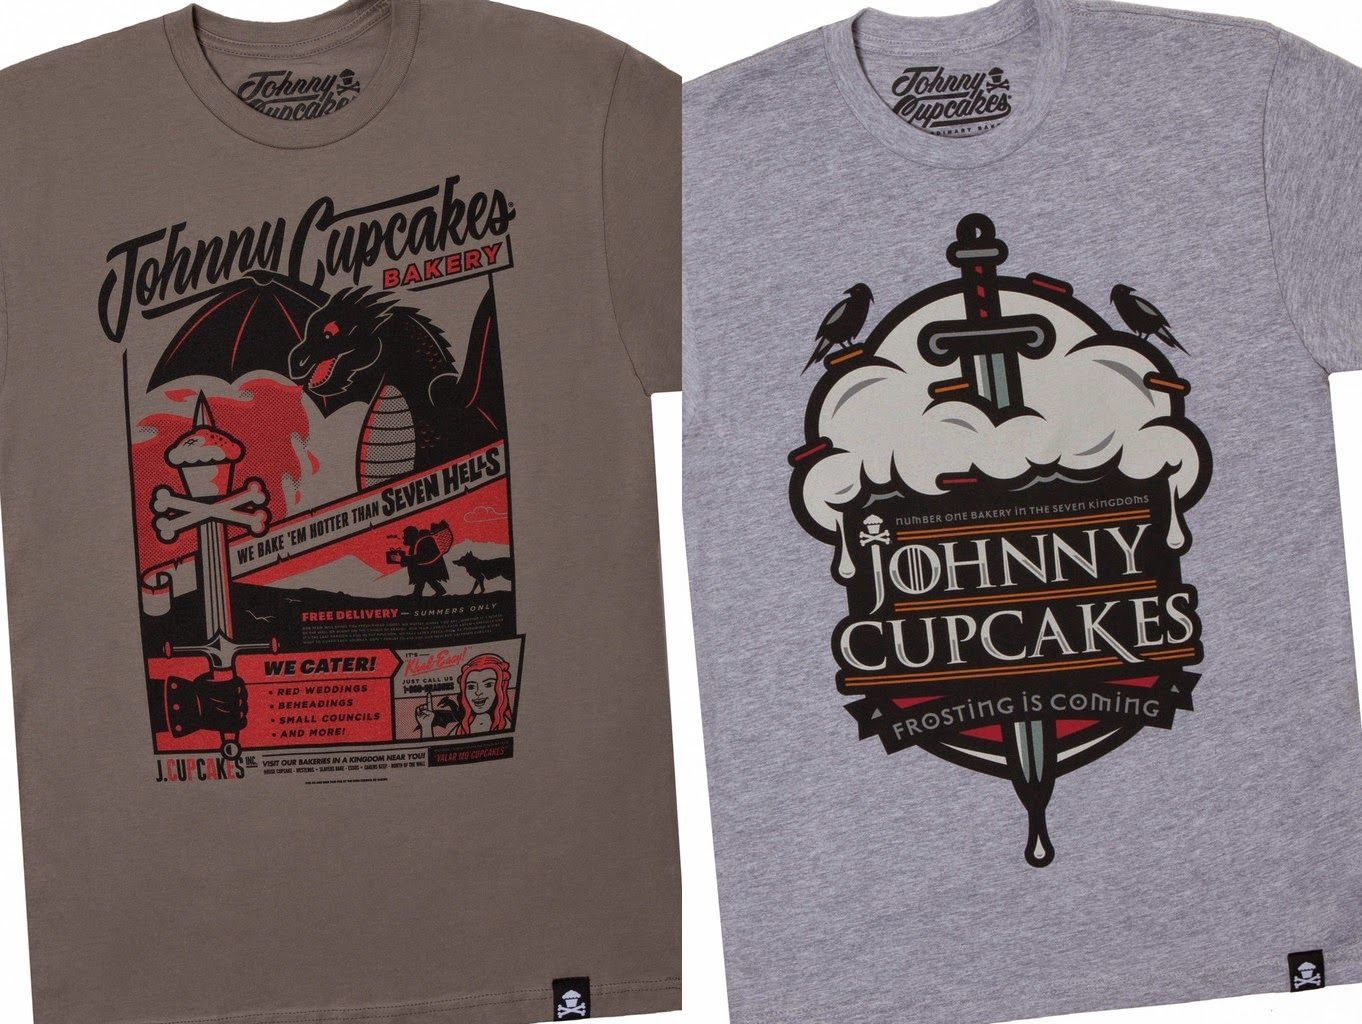 Shirt design games - Johnny Cupcakes X Game Of Thrones T Shirt Collection Frosting Is Coming